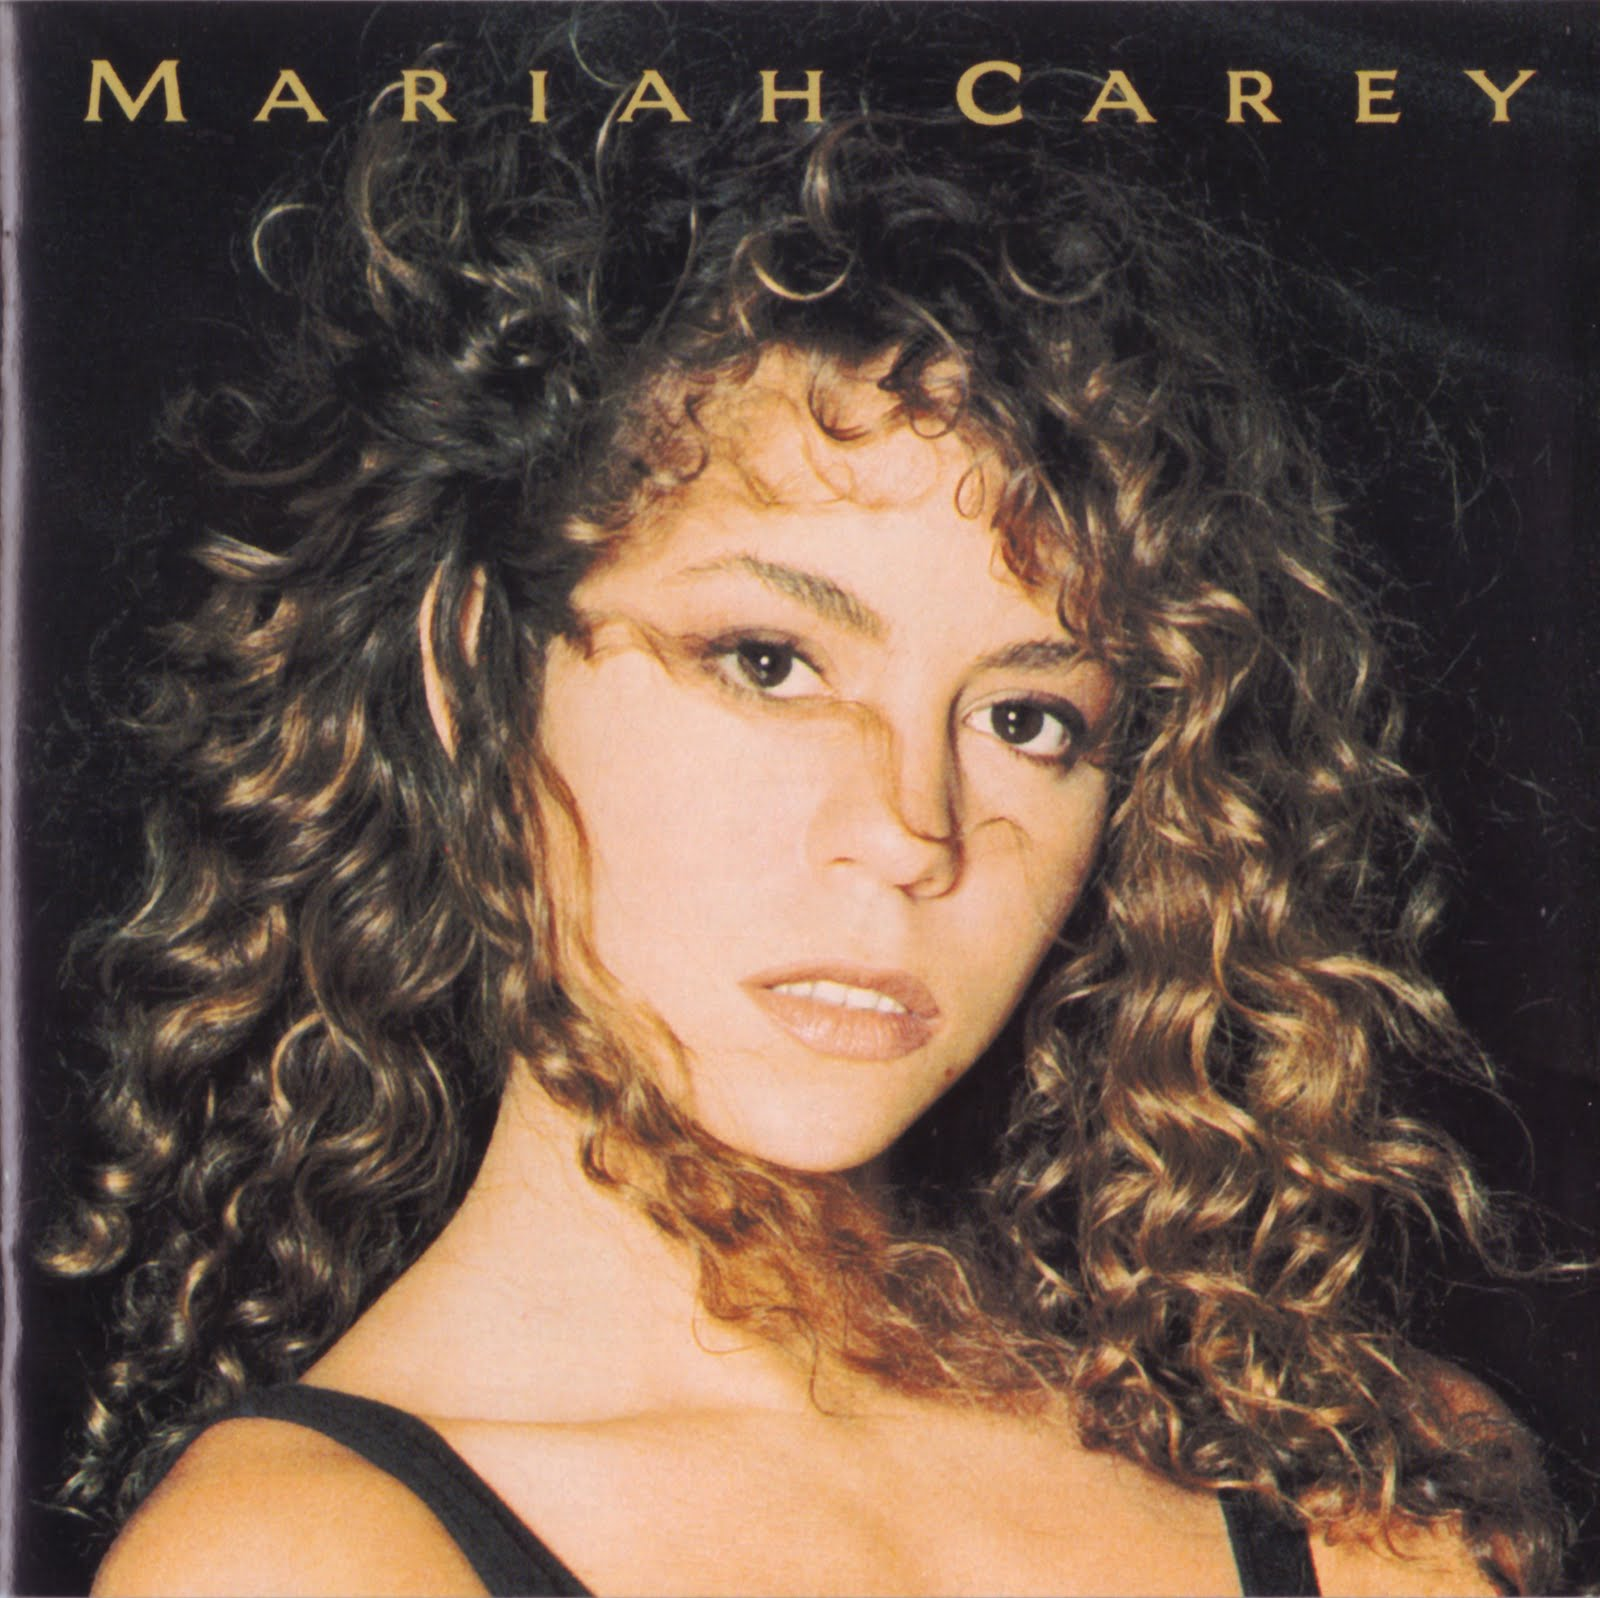 Mariah Carey - I Wanna Know What Love Is